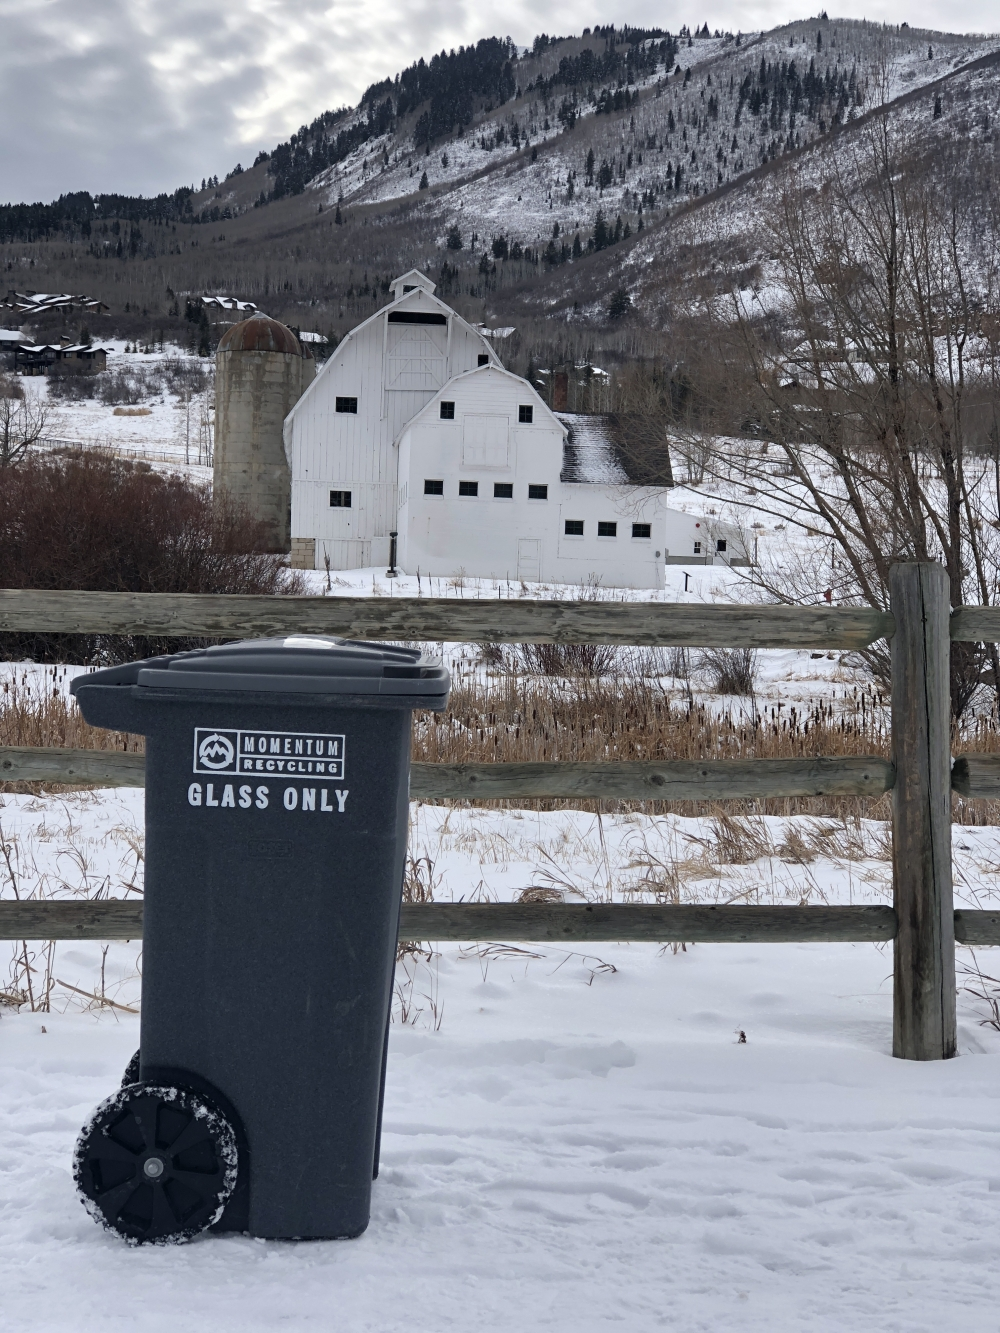 Park City Residential Glass Recycling Program